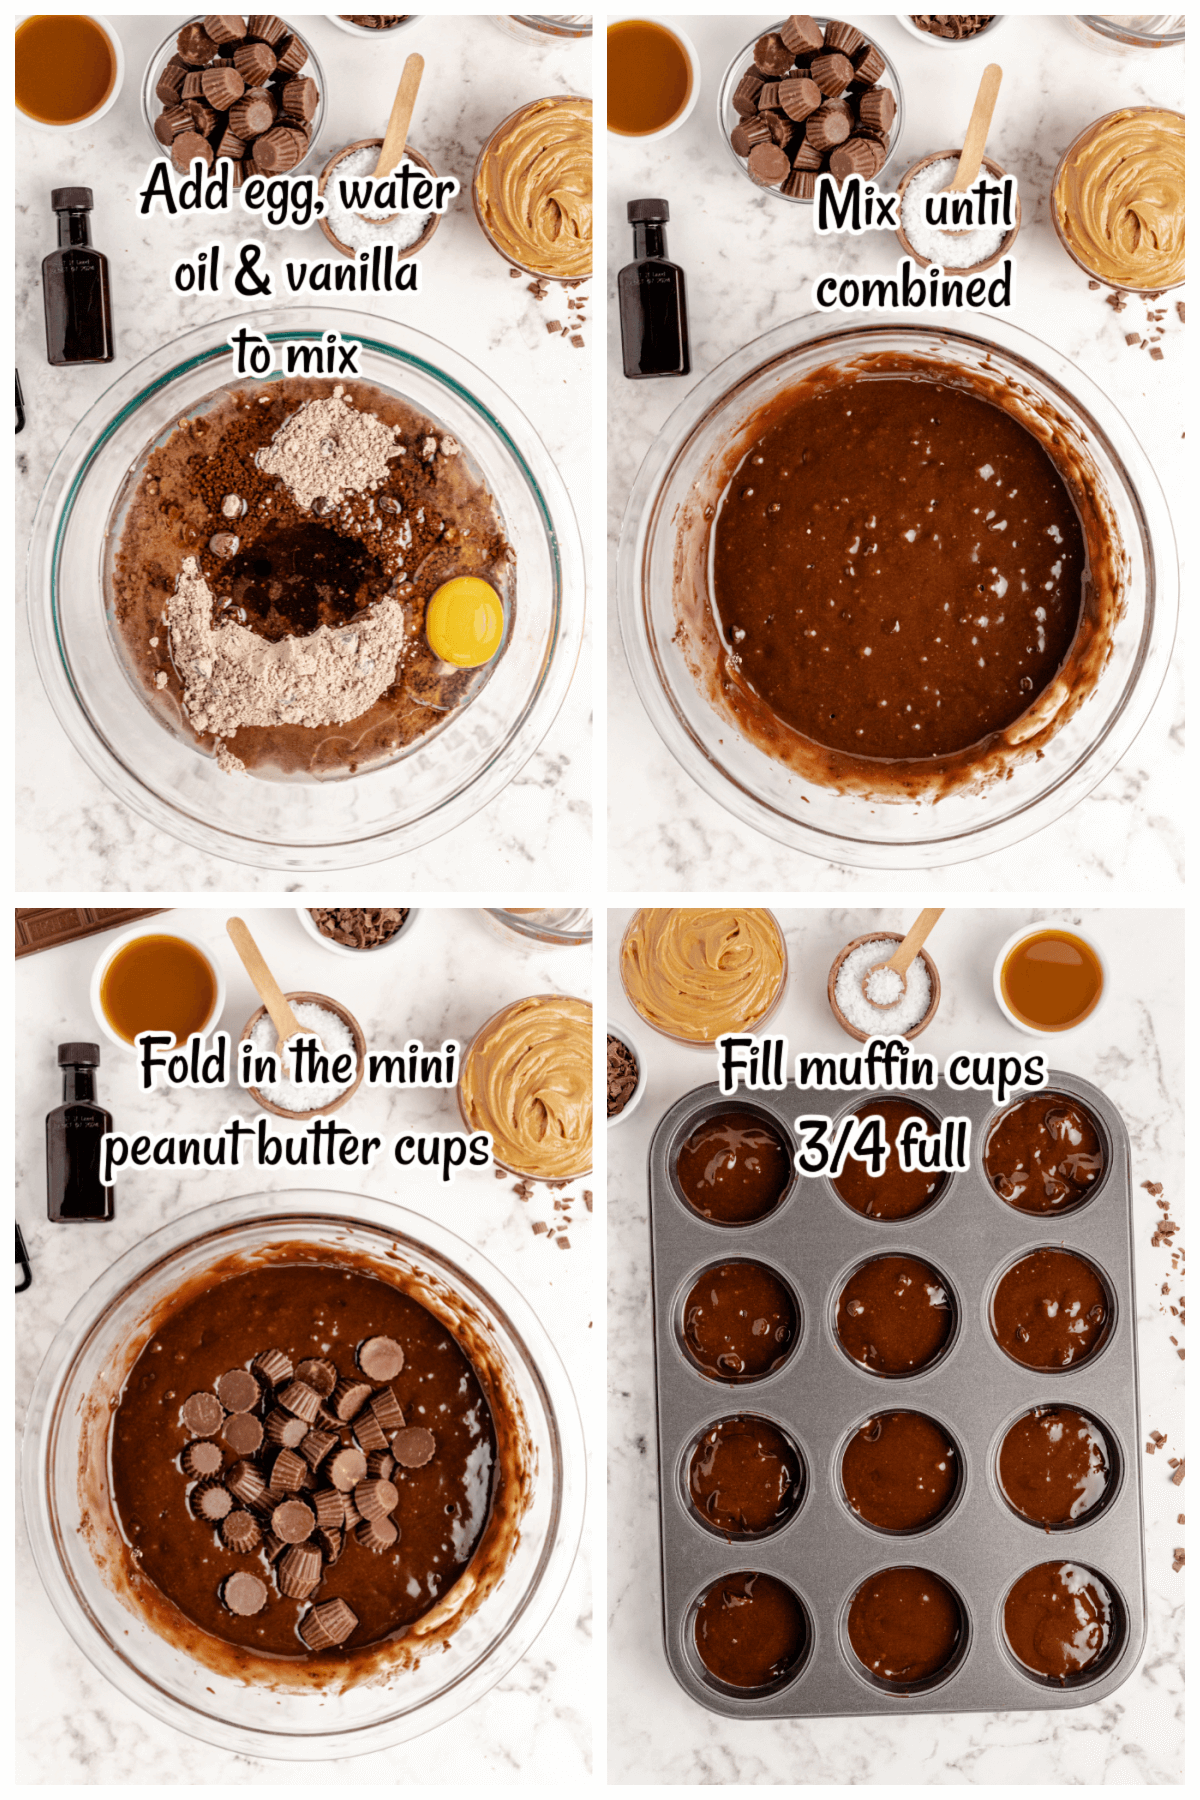 1st set of instructions for making the Brownie Peanut Butter Bites.